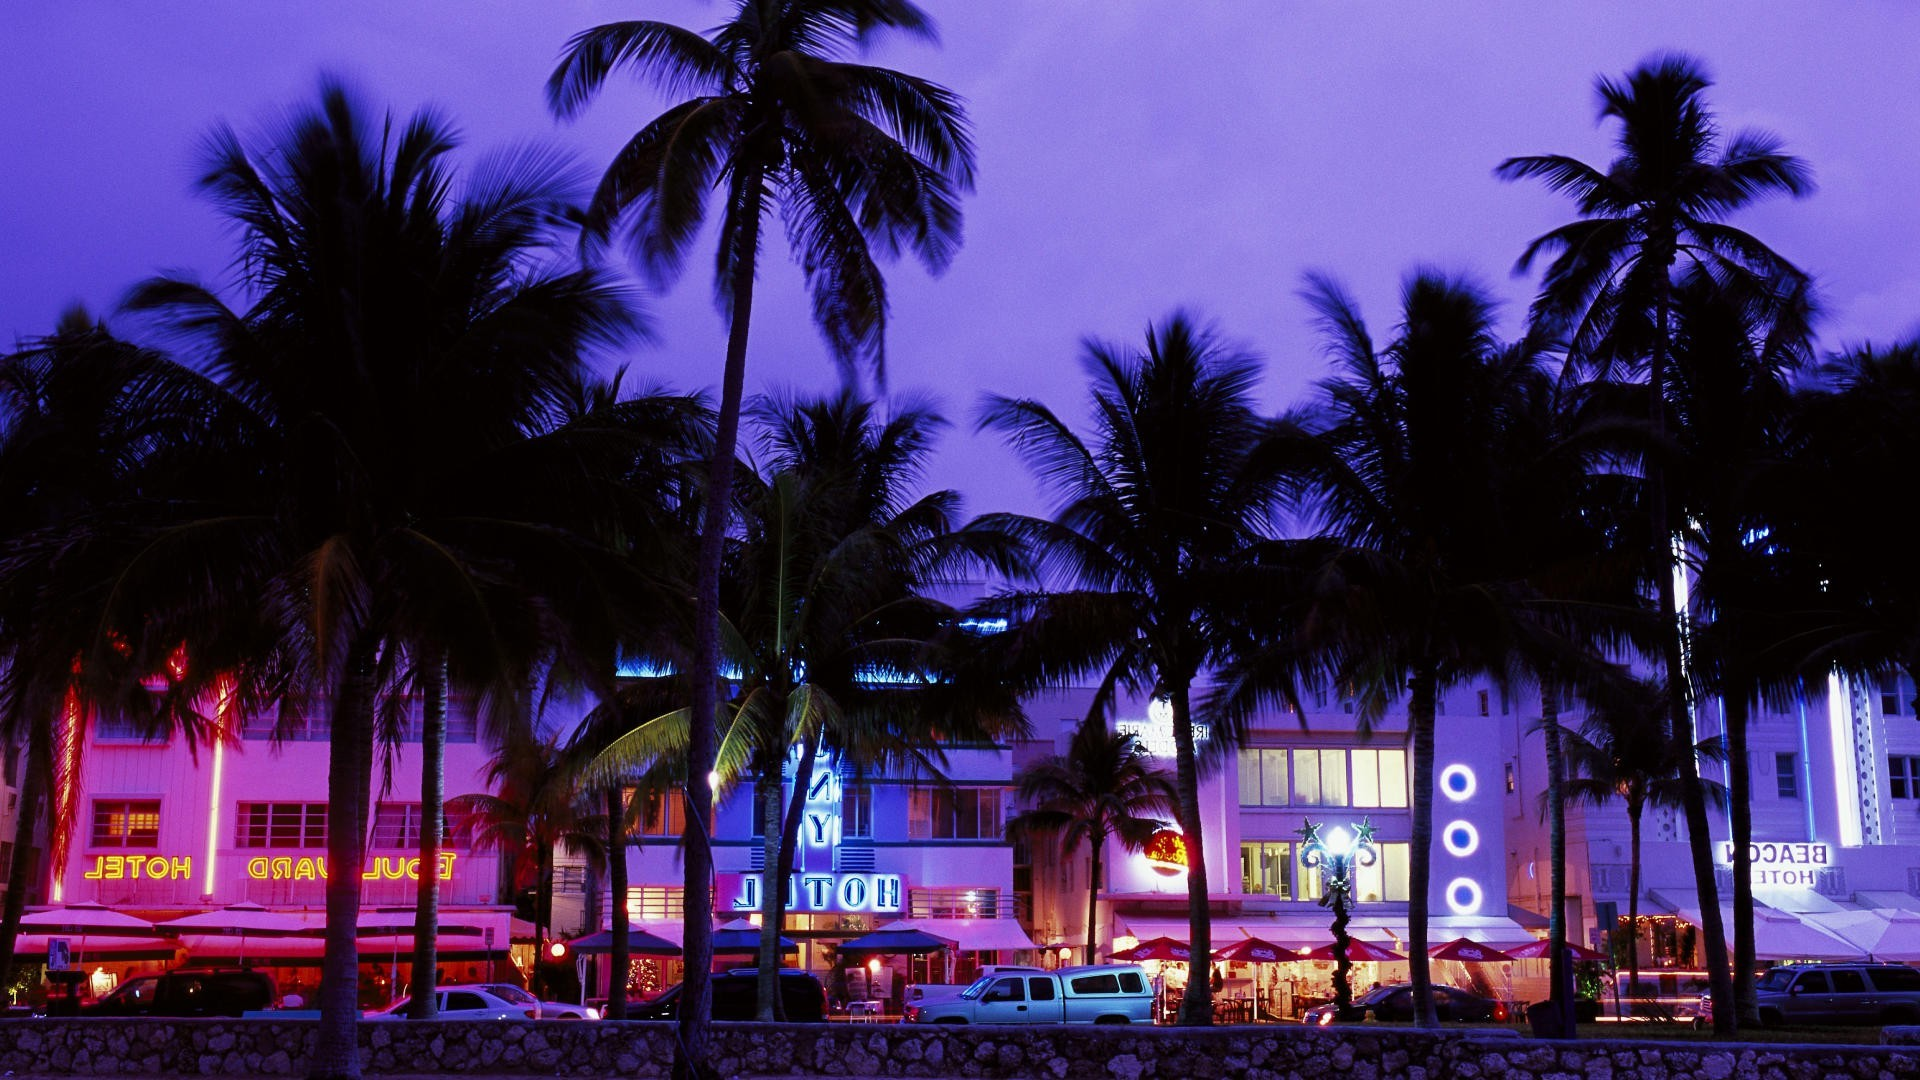 2560x1440 Wallpaper Cars Grand Theft Auto Vice City Hotels Beach Palm Trees